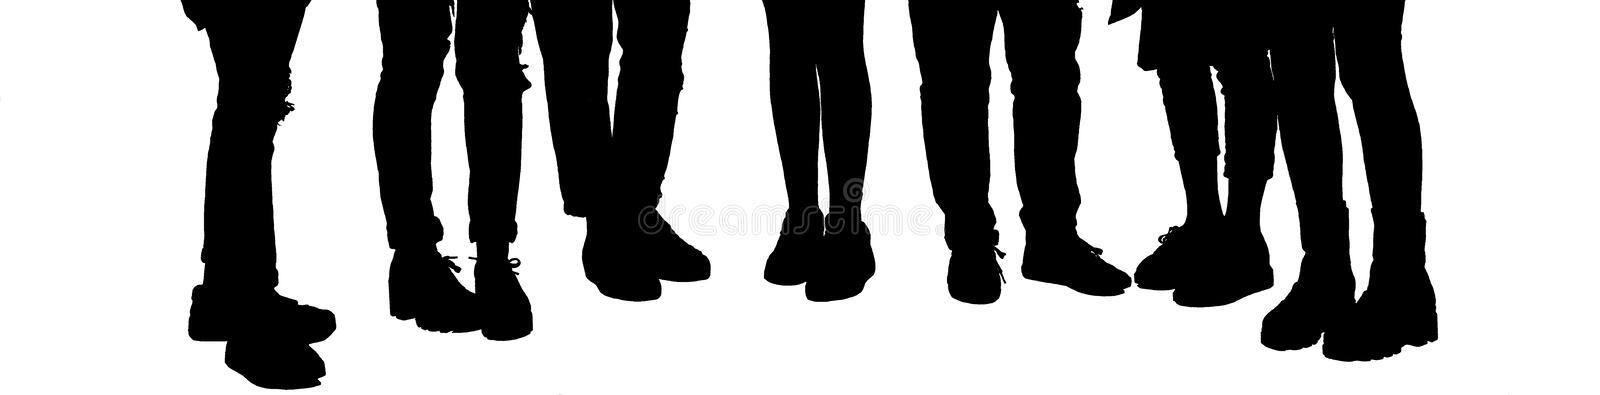 Group of teenagers silhouette. Stylish teens legs isolated on white. Group of schoolgirl. Teenager lifestyle concept. Teenagers gi. Rls spending time together royalty free illustration